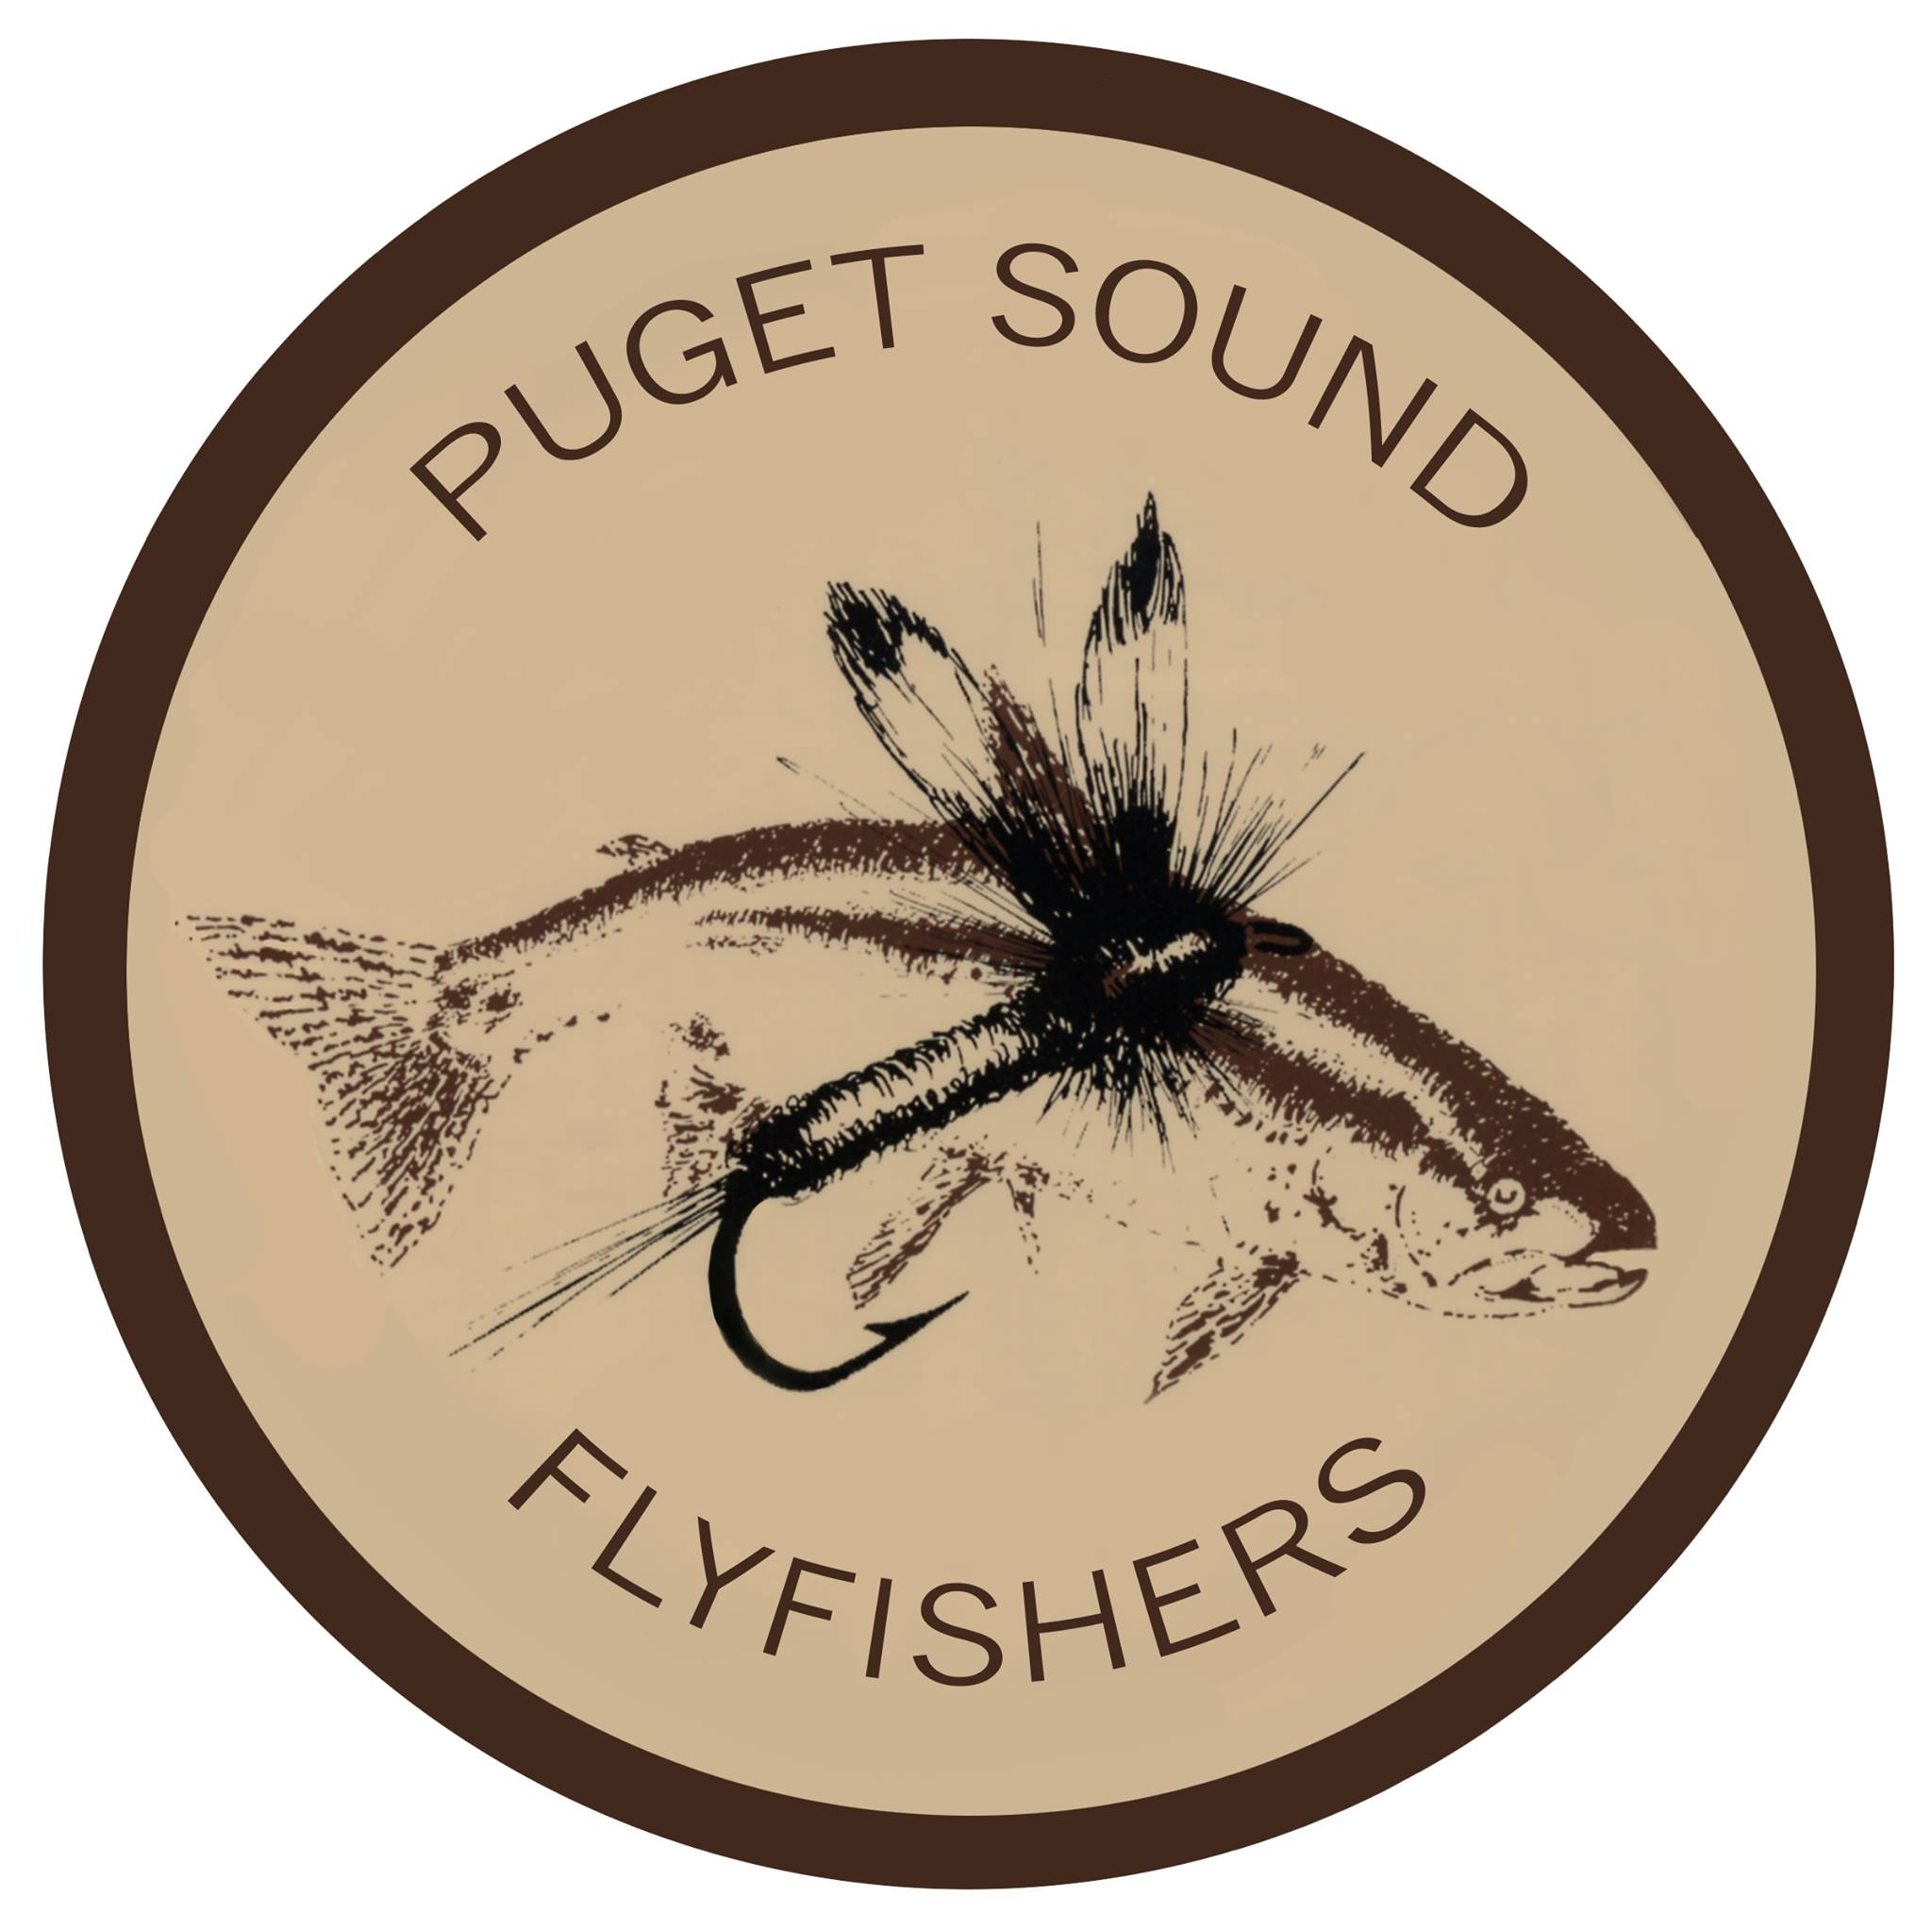 Puget Sound Flyfishers Club